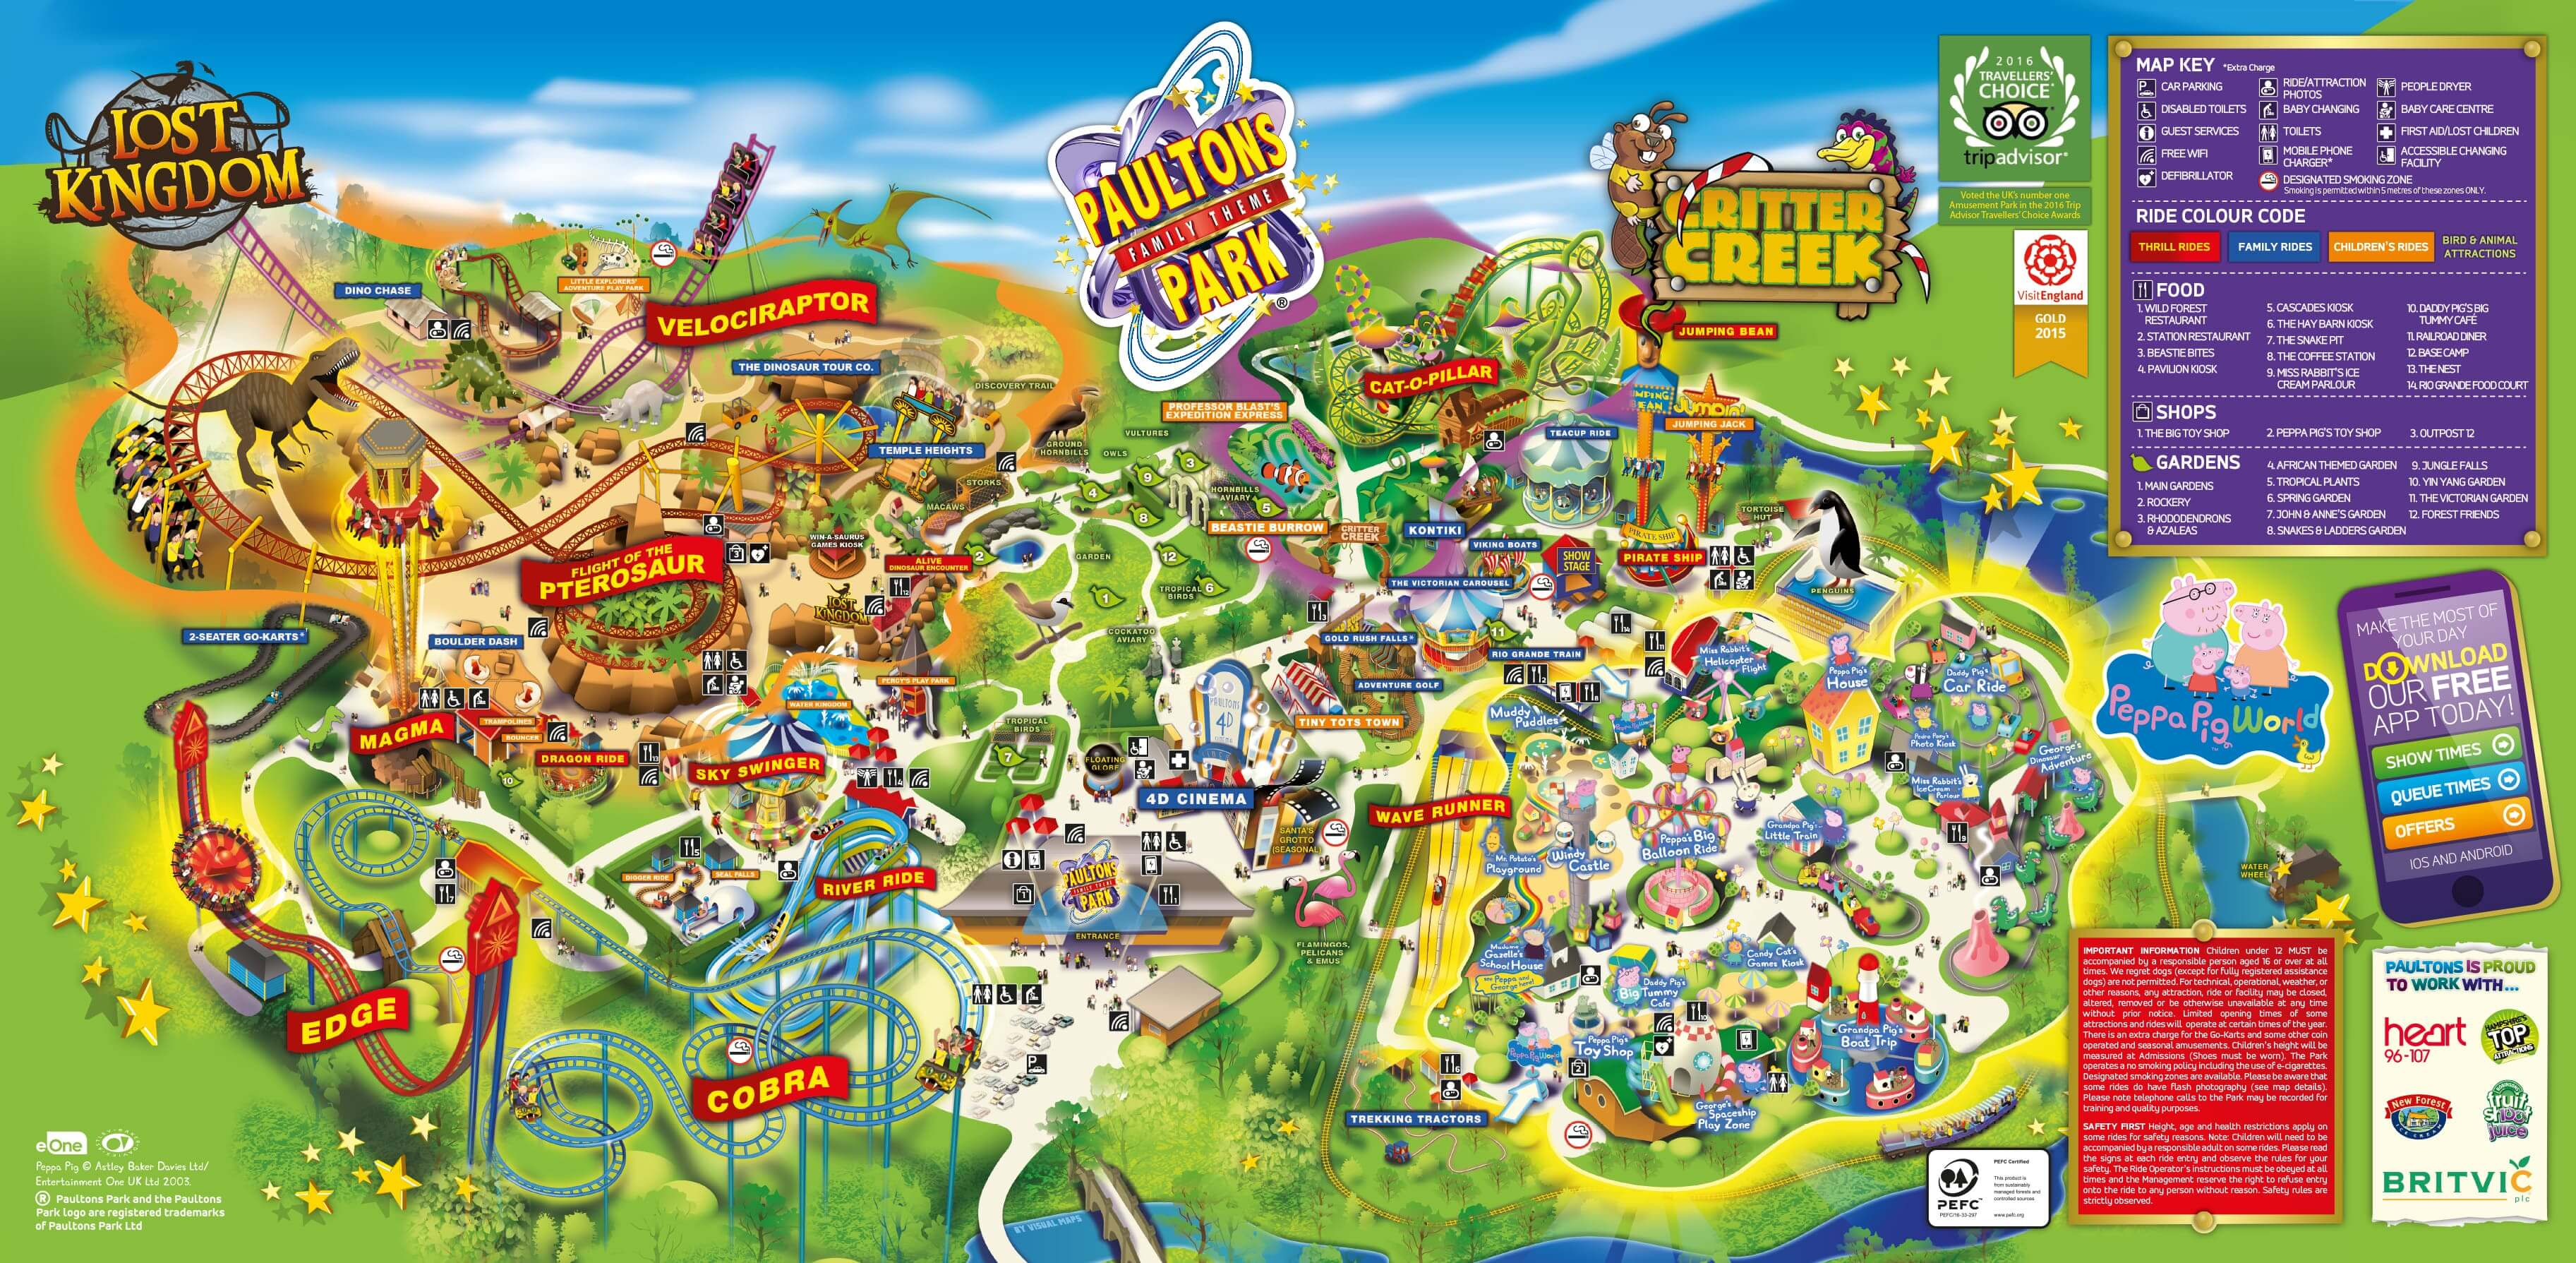 Big Peppa Pig World Expansion At Paultons Park In 2018